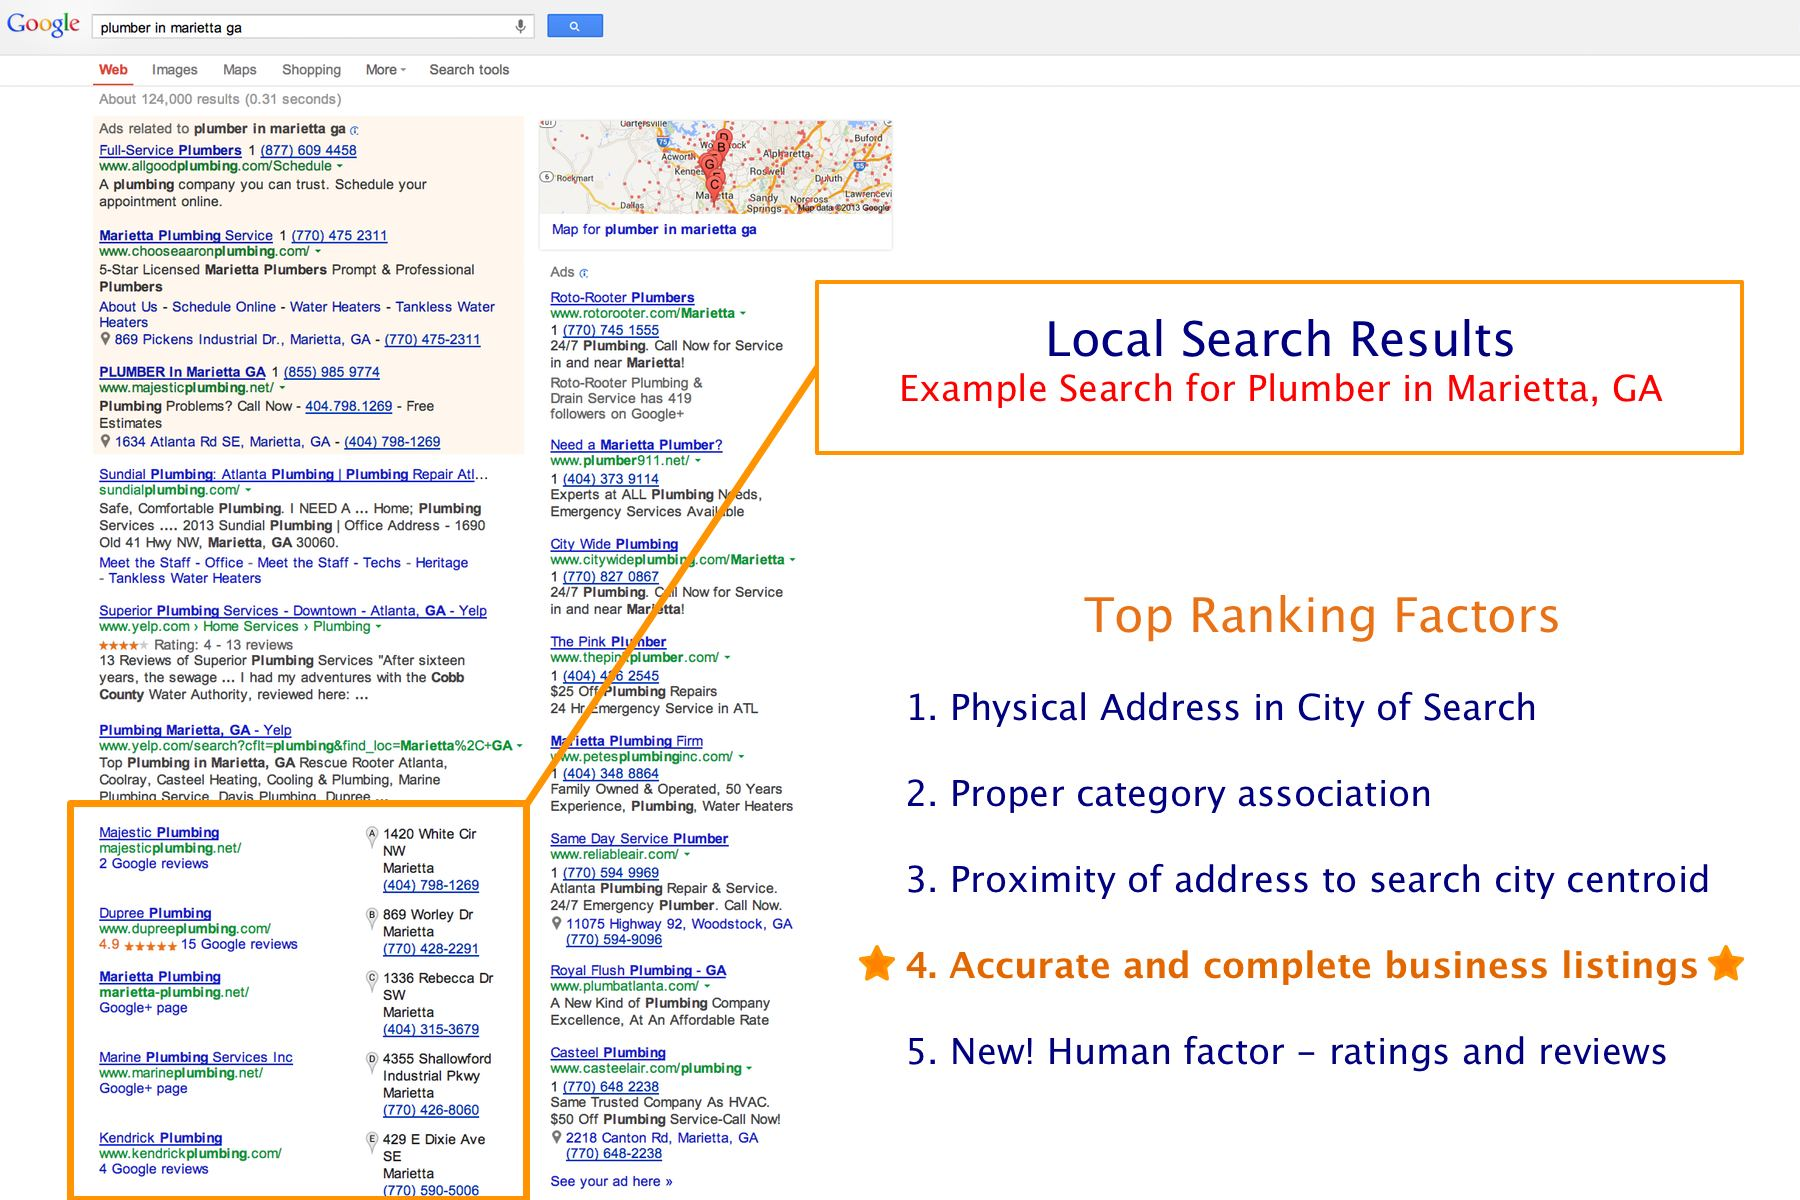 local-search-results-and-ranking-factors